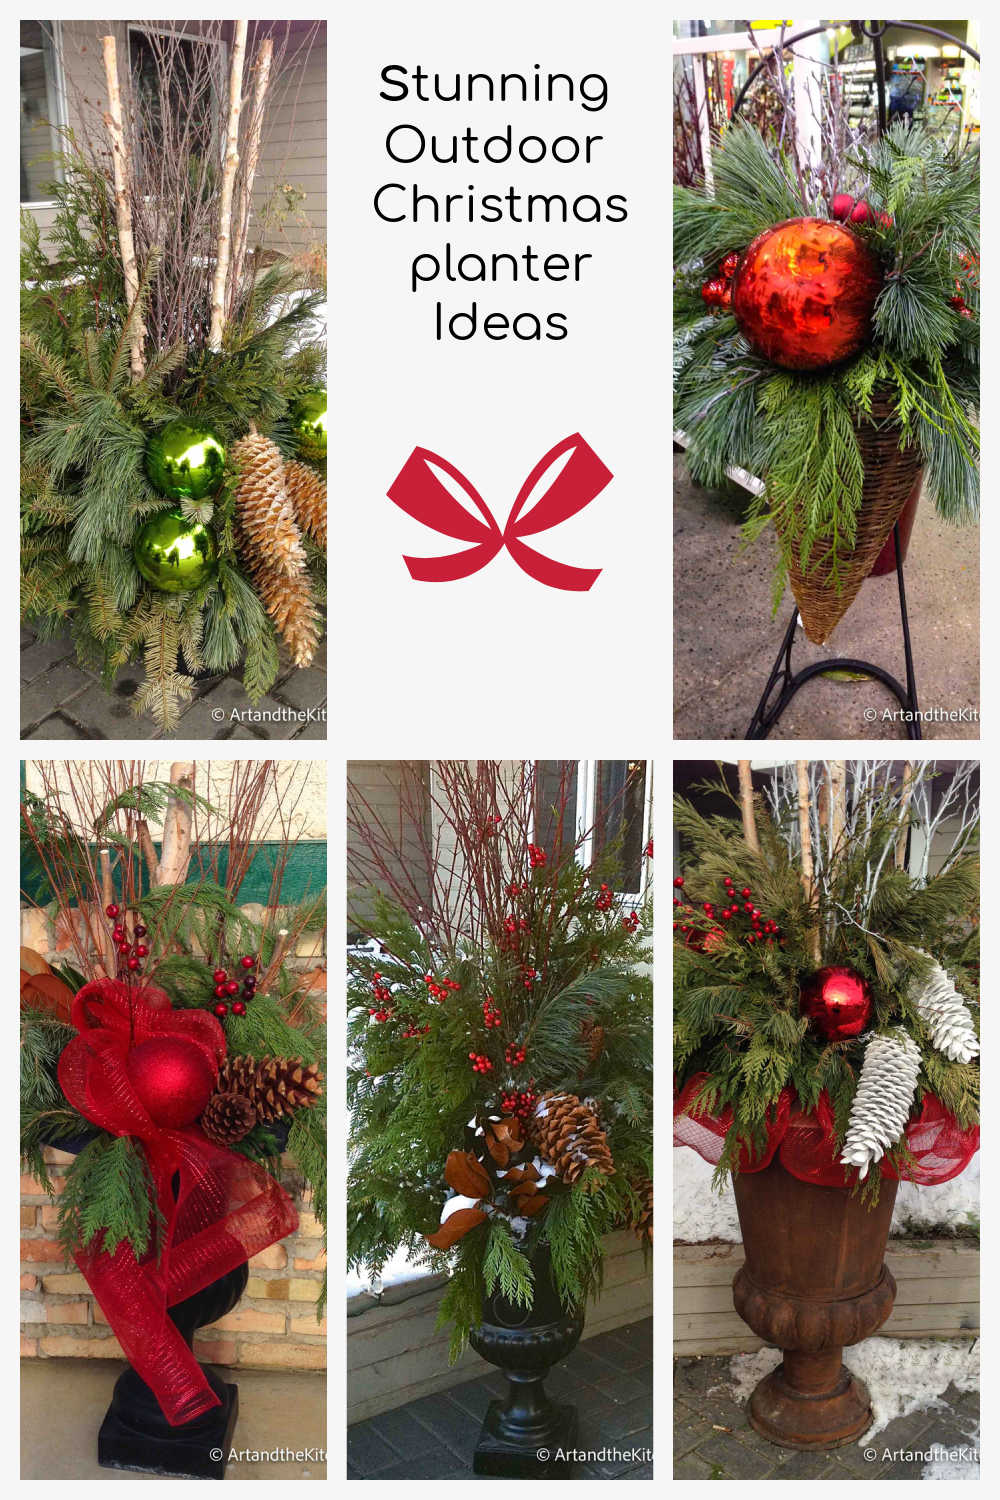 Make your home stunning with an outdoor Christmas planter. Stylish Christmas urns filled with lush greenery, ribbons and decorations for a festive look. via @artandthekitch